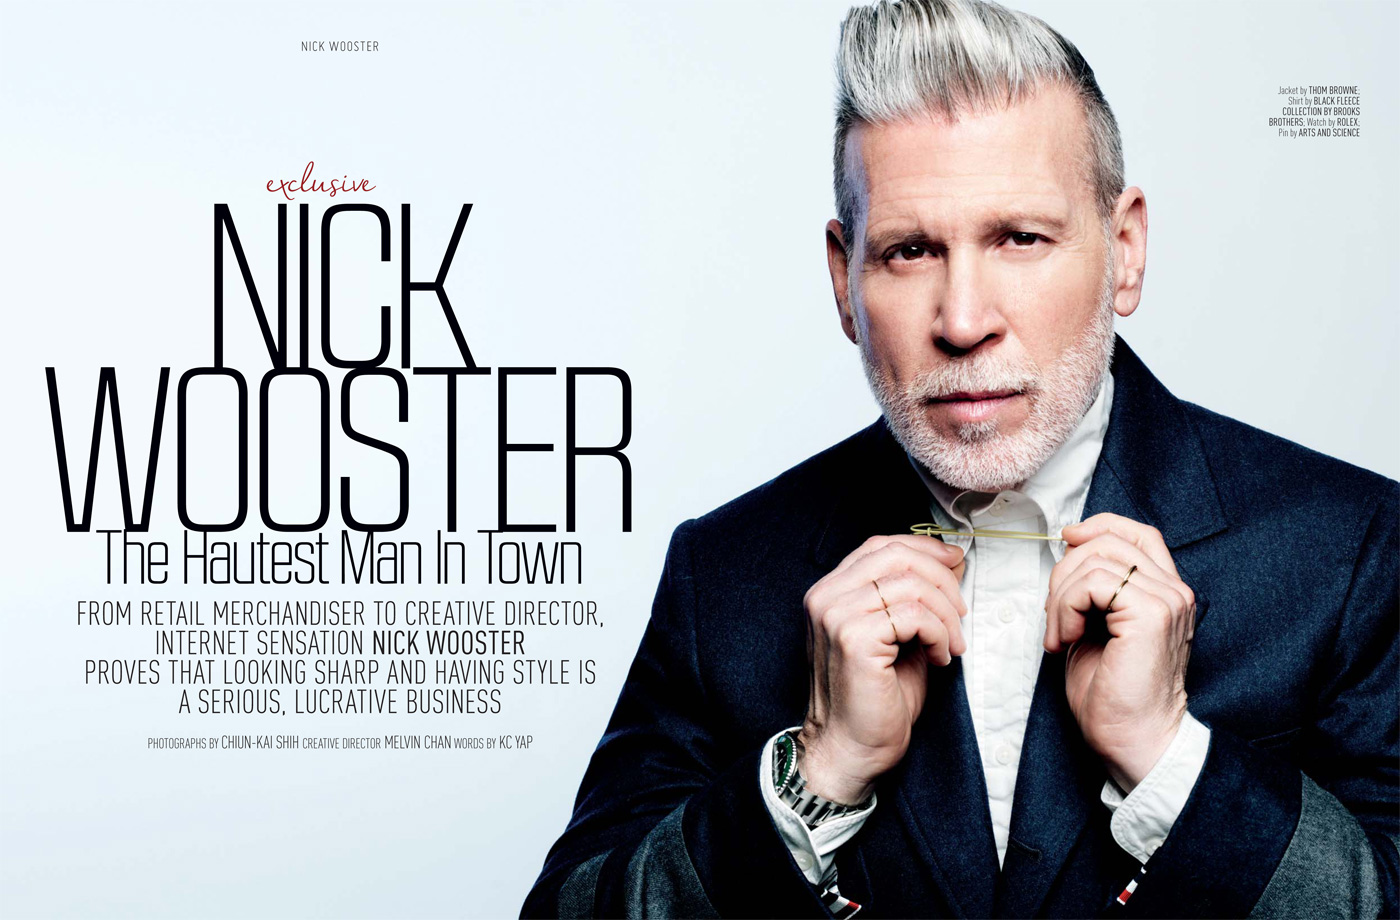 Exclusive Nick Wooster For August Man Malaysia